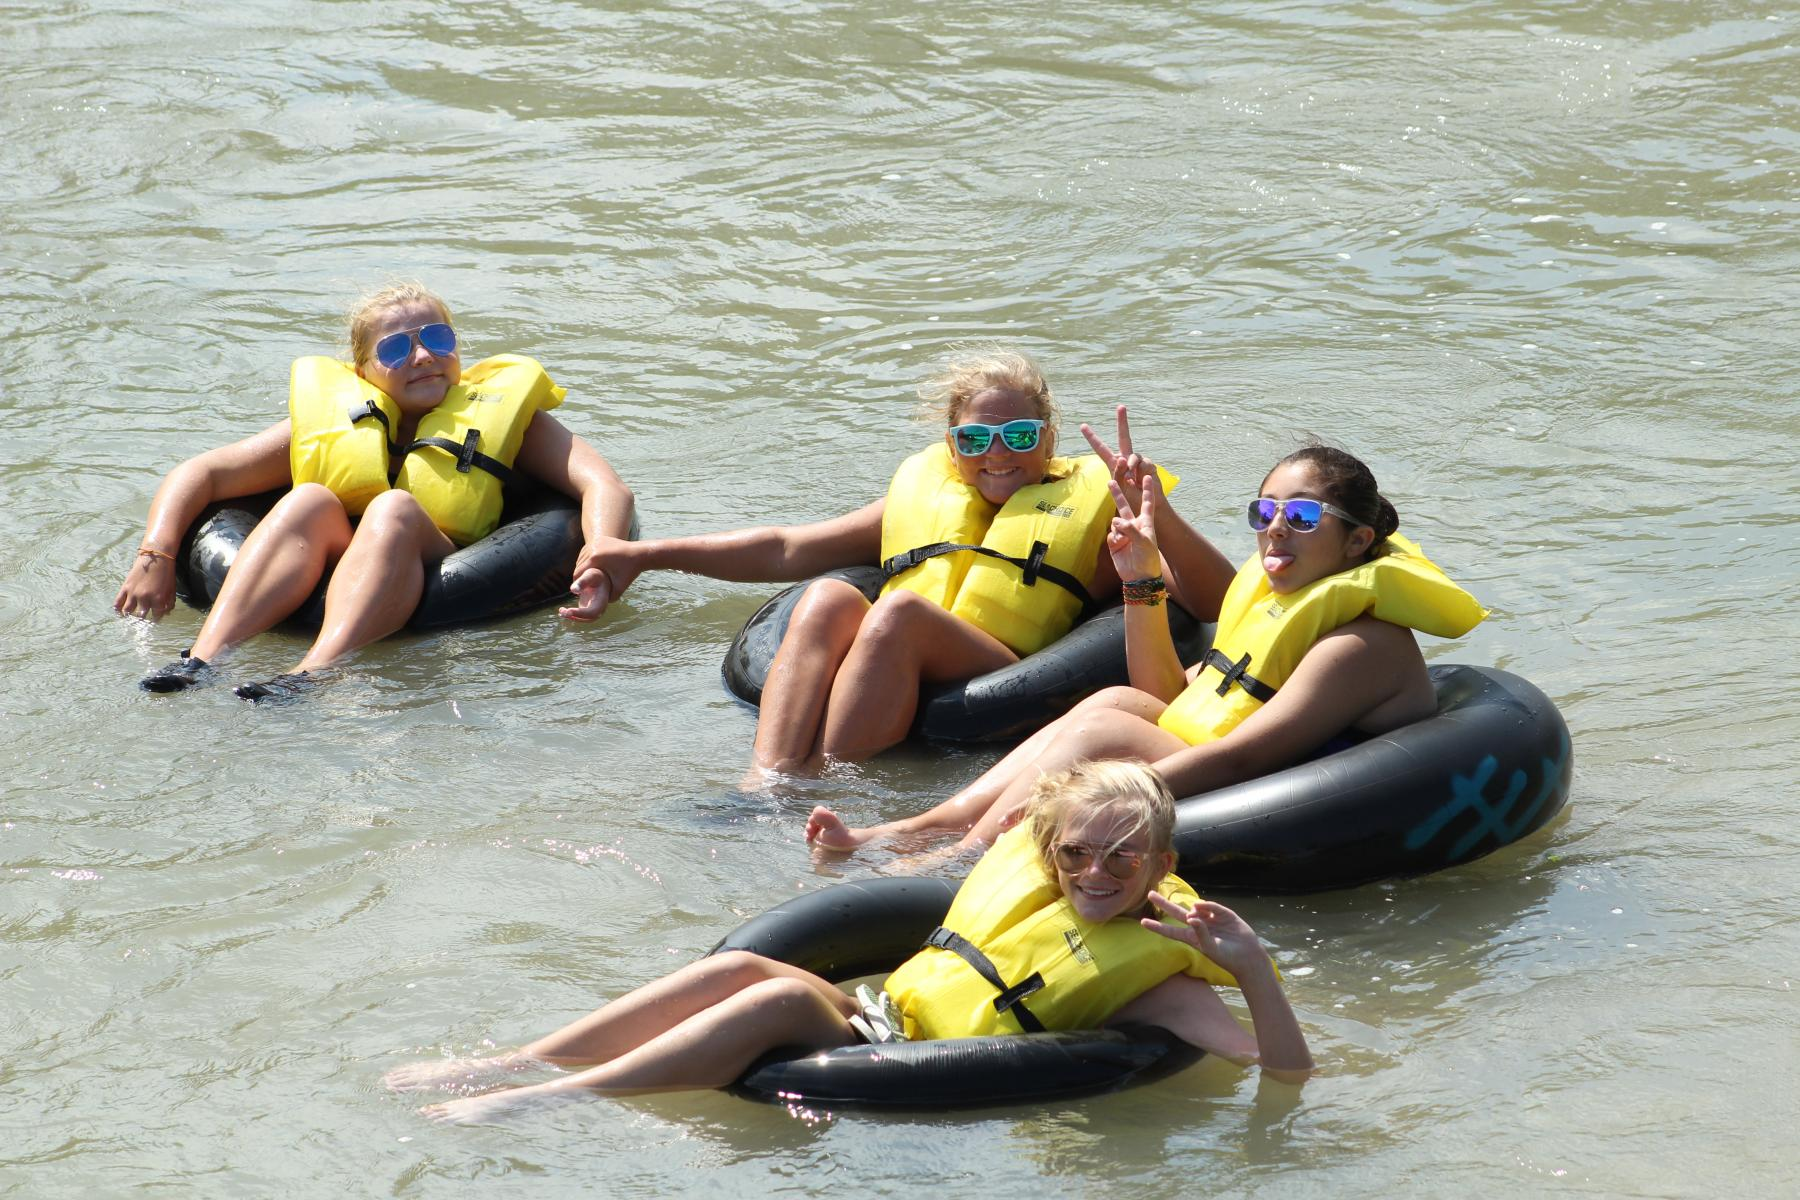 girls tubing down a river